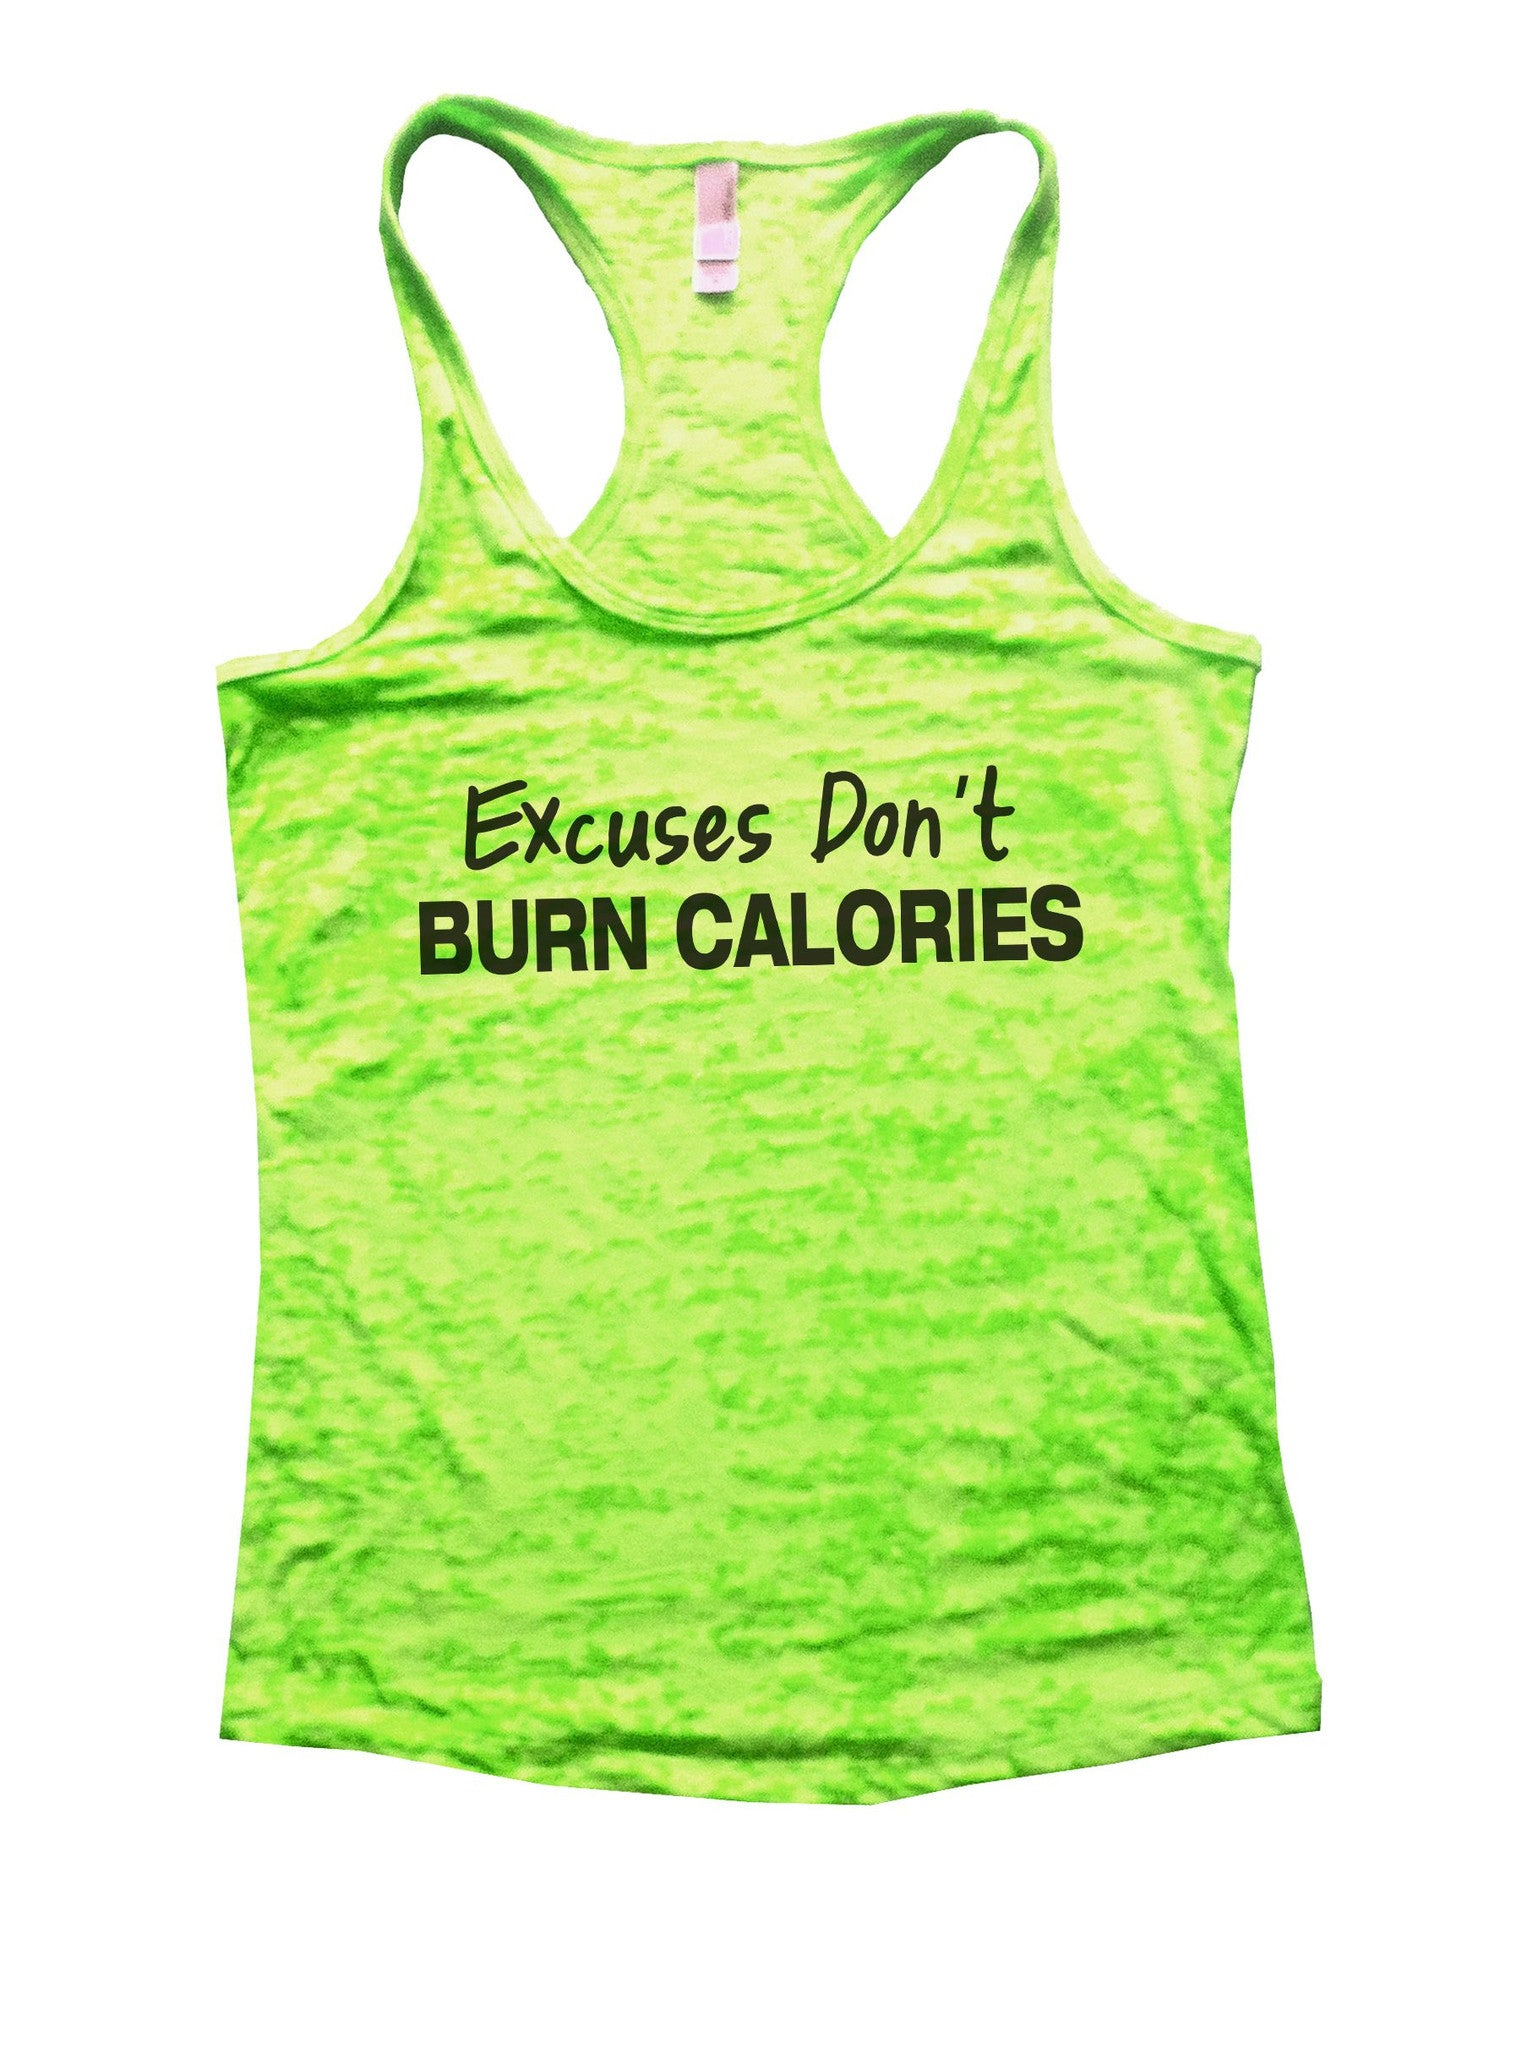 Excuses Don't Burn Calories Burnout Tank Top By BurnoutTankTops.com - 843 - Funny Shirts Tank Tops Burnouts and Triblends  - 2